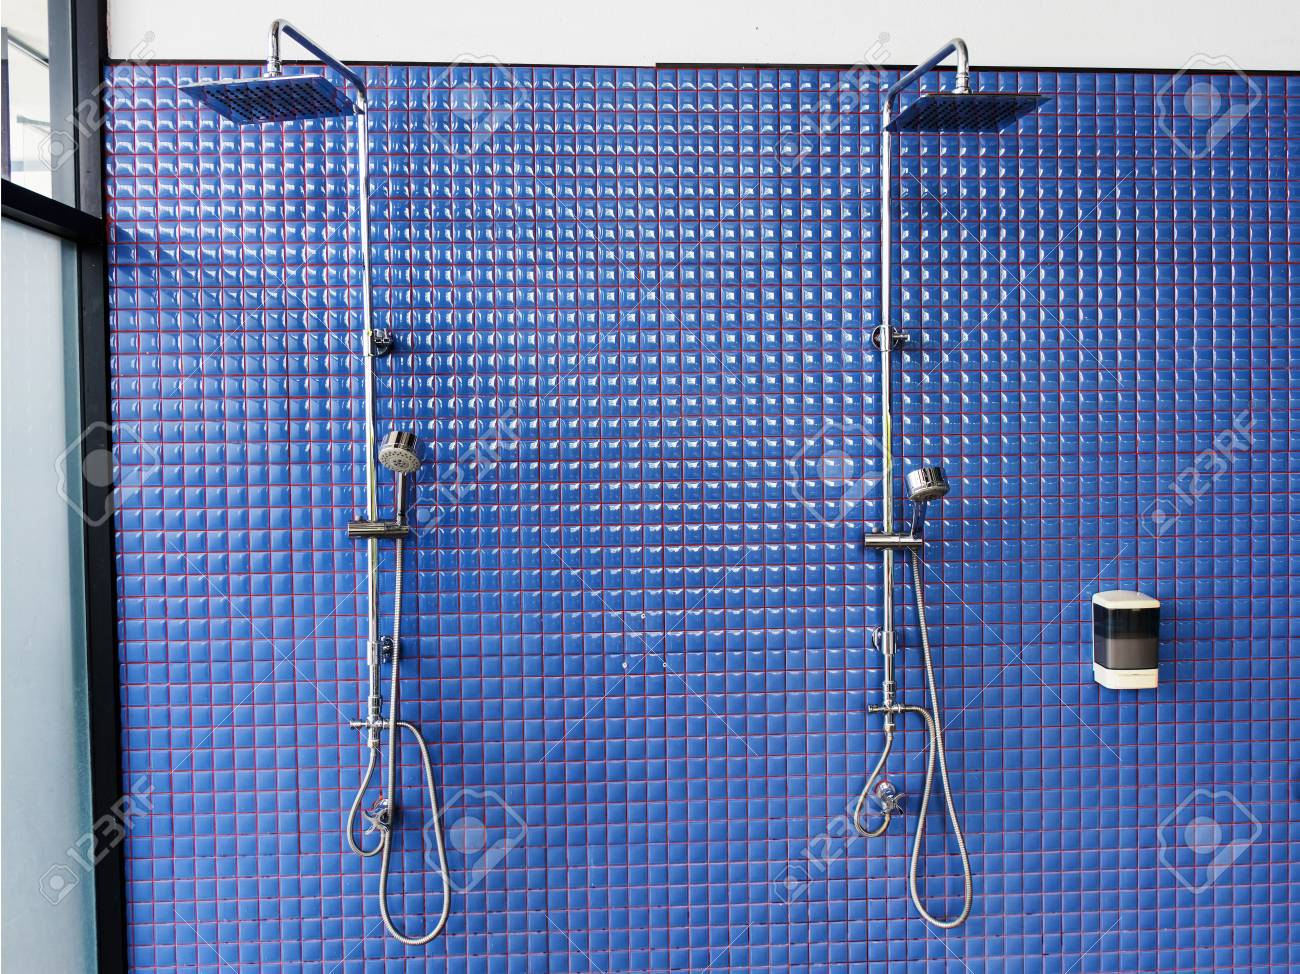 Public shower on blue tile wall of swimming pool